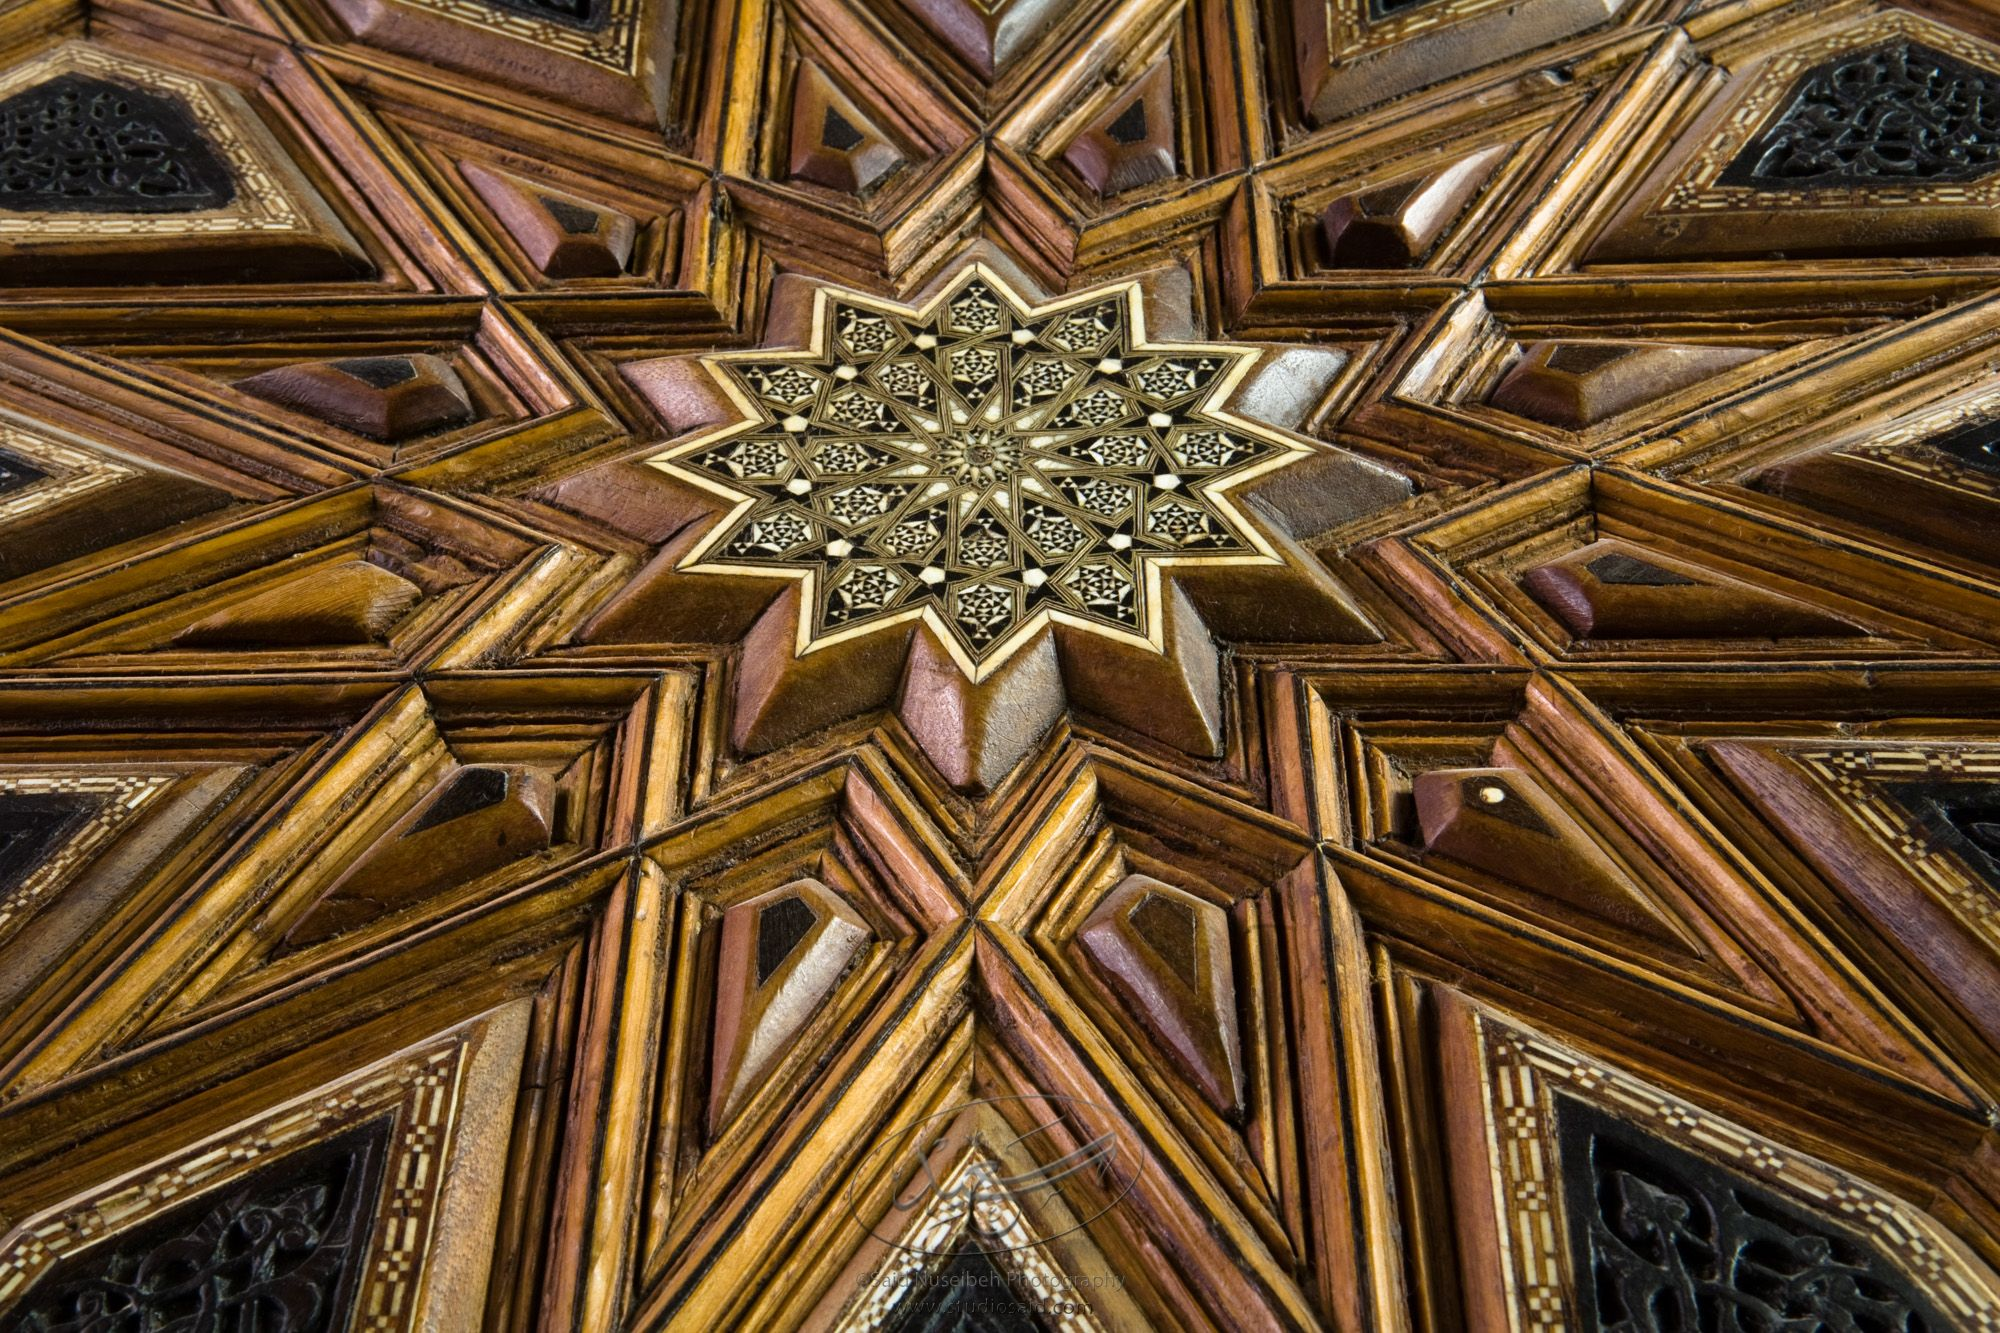 """Twelve-sided stars. Minbar, Carved Woodwork and Inlay Detail""The late-13th / early-14th c. Mamluk minbar, or pulpit, of Sultan al-Nasir Muhammad, the ninth Mamluk Sultan from Cairo and son of Qalawun. The minbar was located in the Umayyad Mosque in Aleppo, Haleb, prior to its damage and disappearance in May 2013."